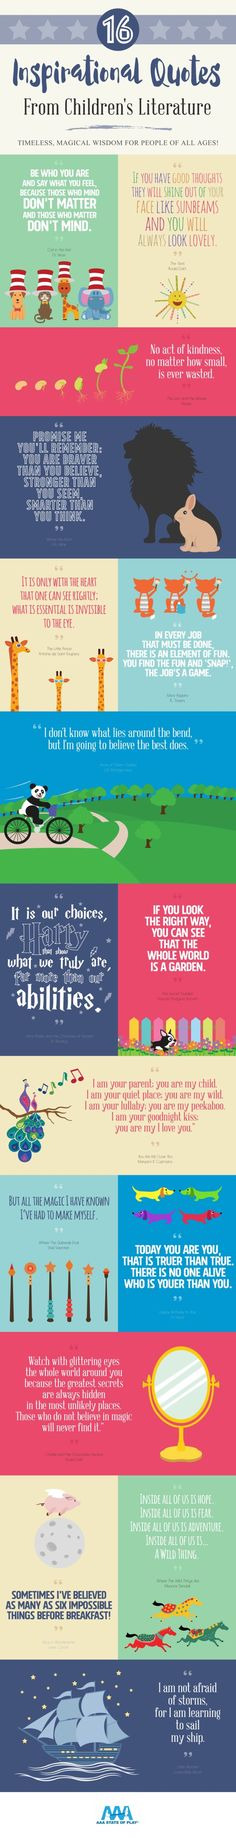 Inspirational quotes from children's books #infographic